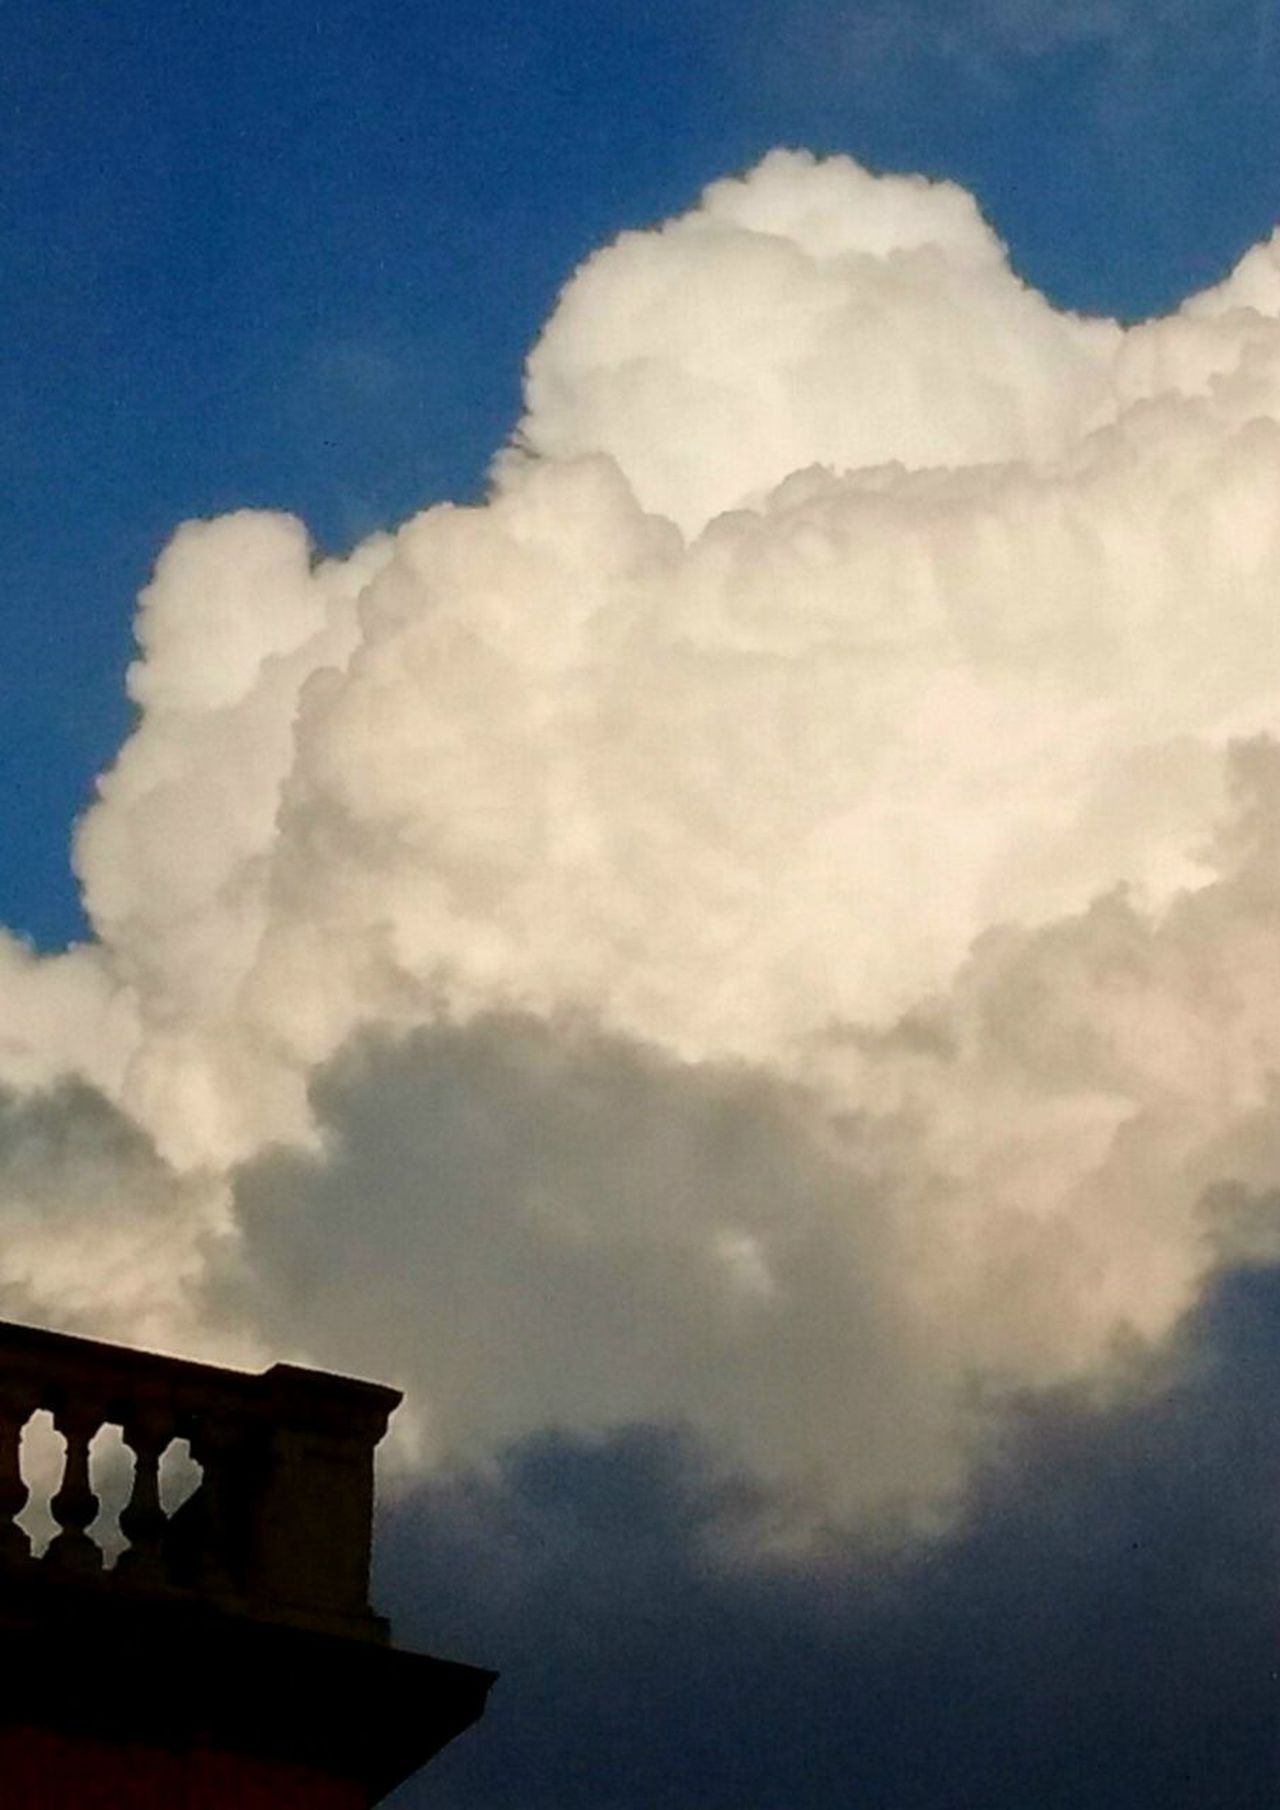 Nube. Cloud - Sky Architecture Built Structure Weather House Sky Building Exterior Smog Roof No People Outdoors Fog Day Spooky Smoke Stack Halloween Nature Nube Nubes Nubes Y Cielo Nubesdetuciudad